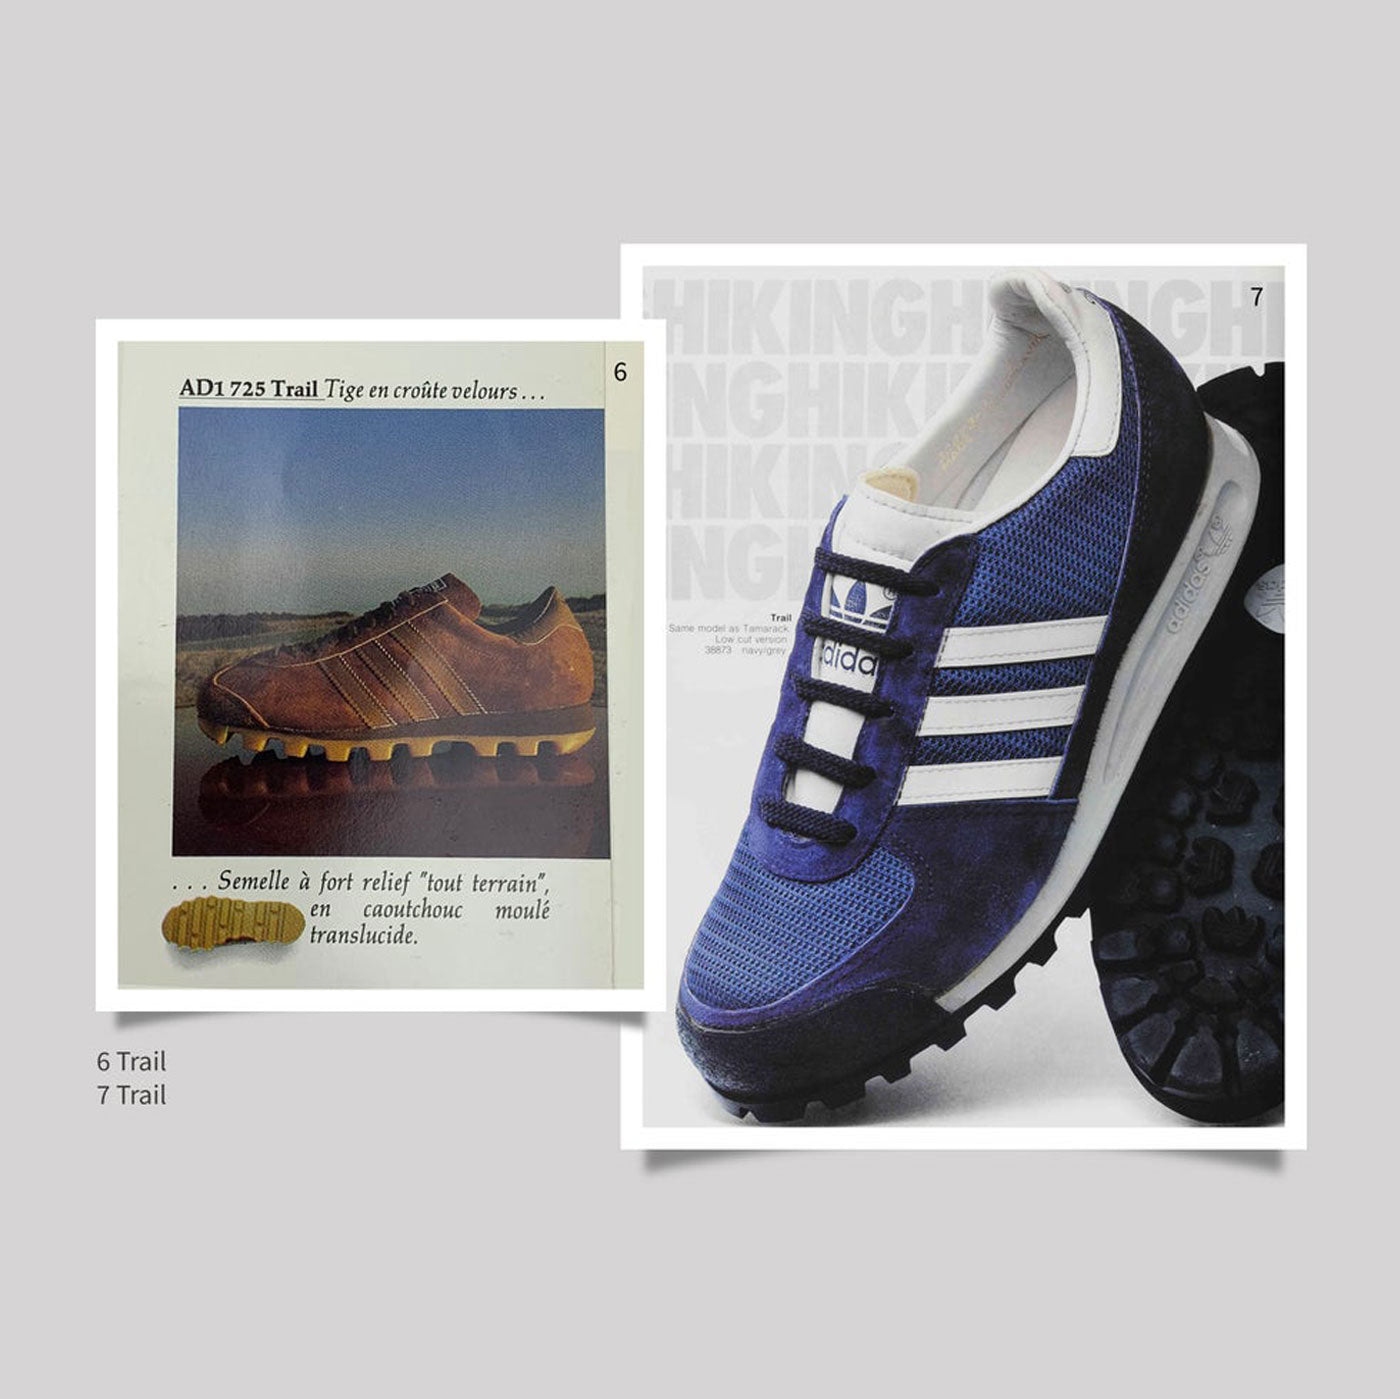 Vintage Adidas Schuhe North America Book 2 – Colours May